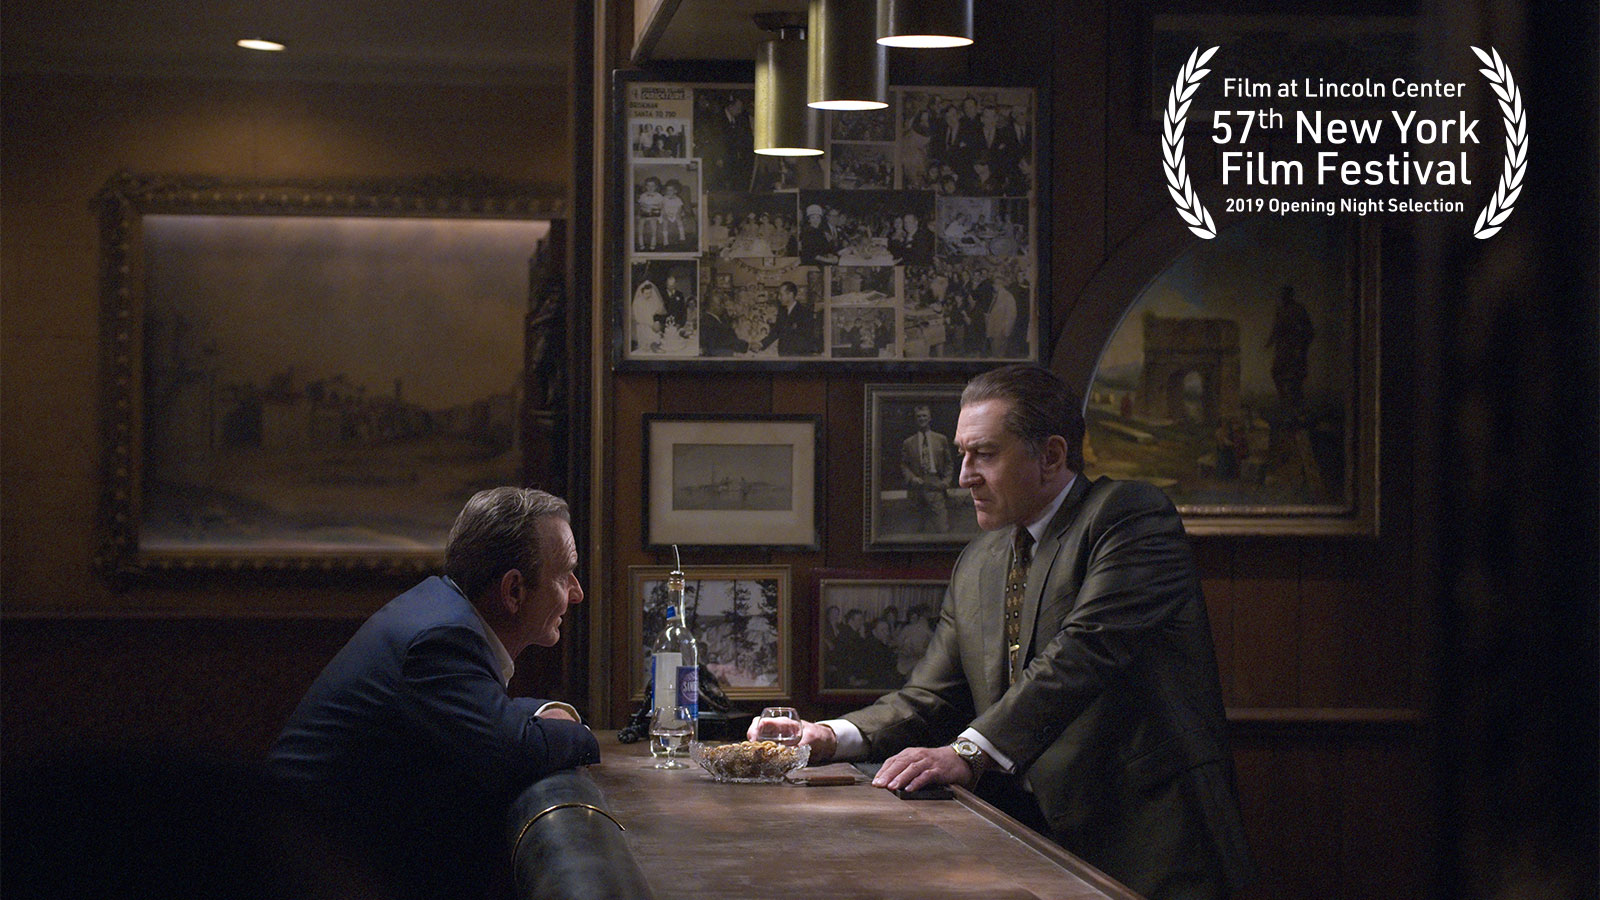 first-look-at-martin-scorseses-the-irishman-which-will-premiere-at-new-york-film-festival3